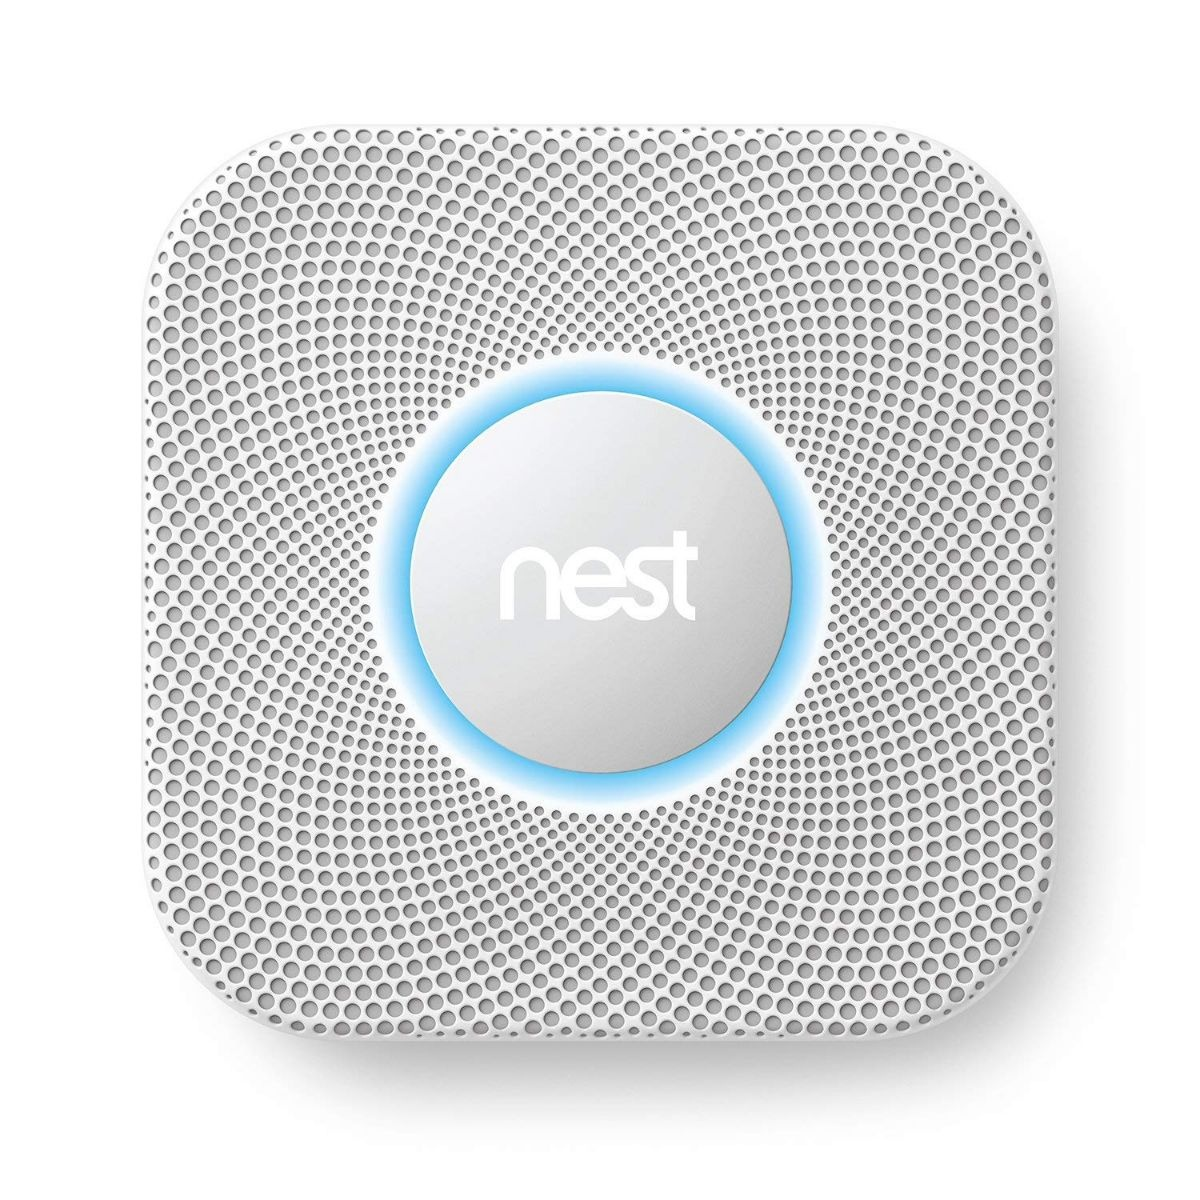 Nest Protect Smoke + Carbon Monoxide Detector - White (Battery Version) S2001BW (Refurbished)